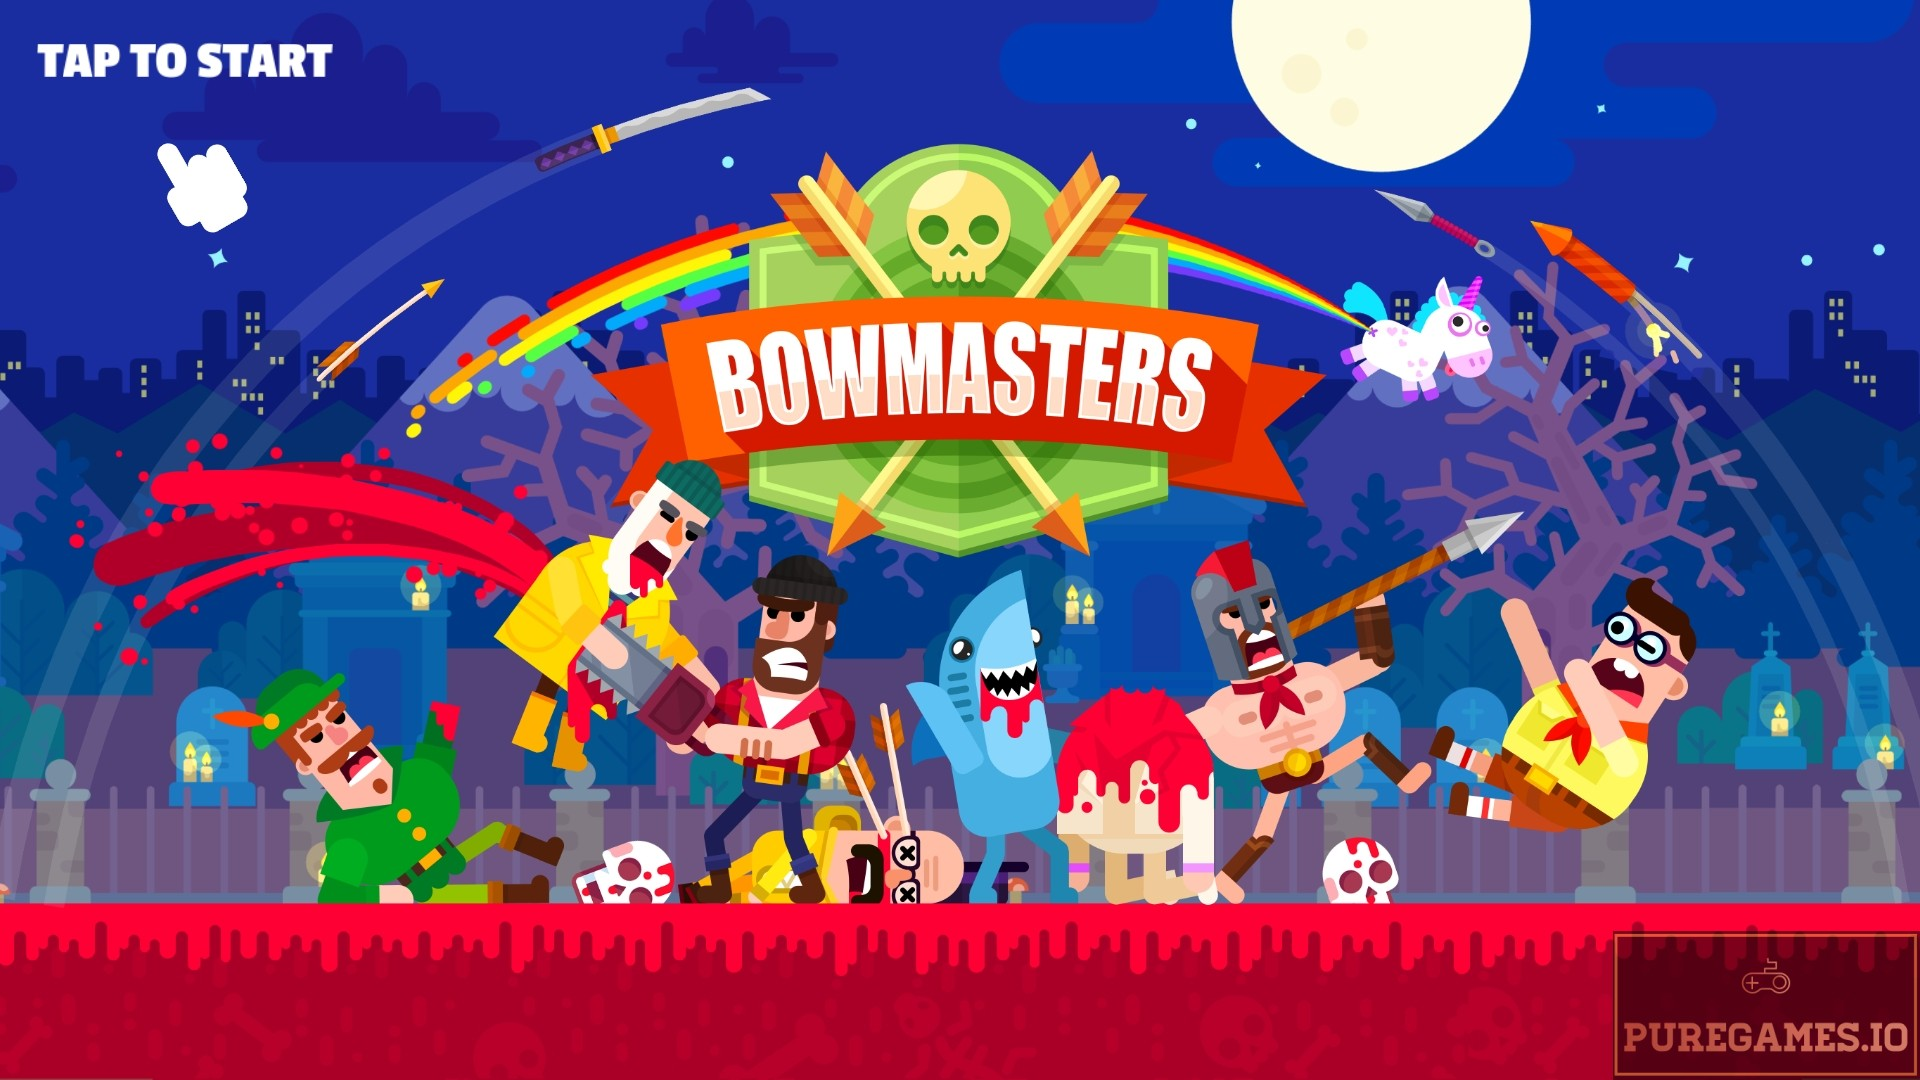 Download Bowmasters APK - For Android/iOS 1